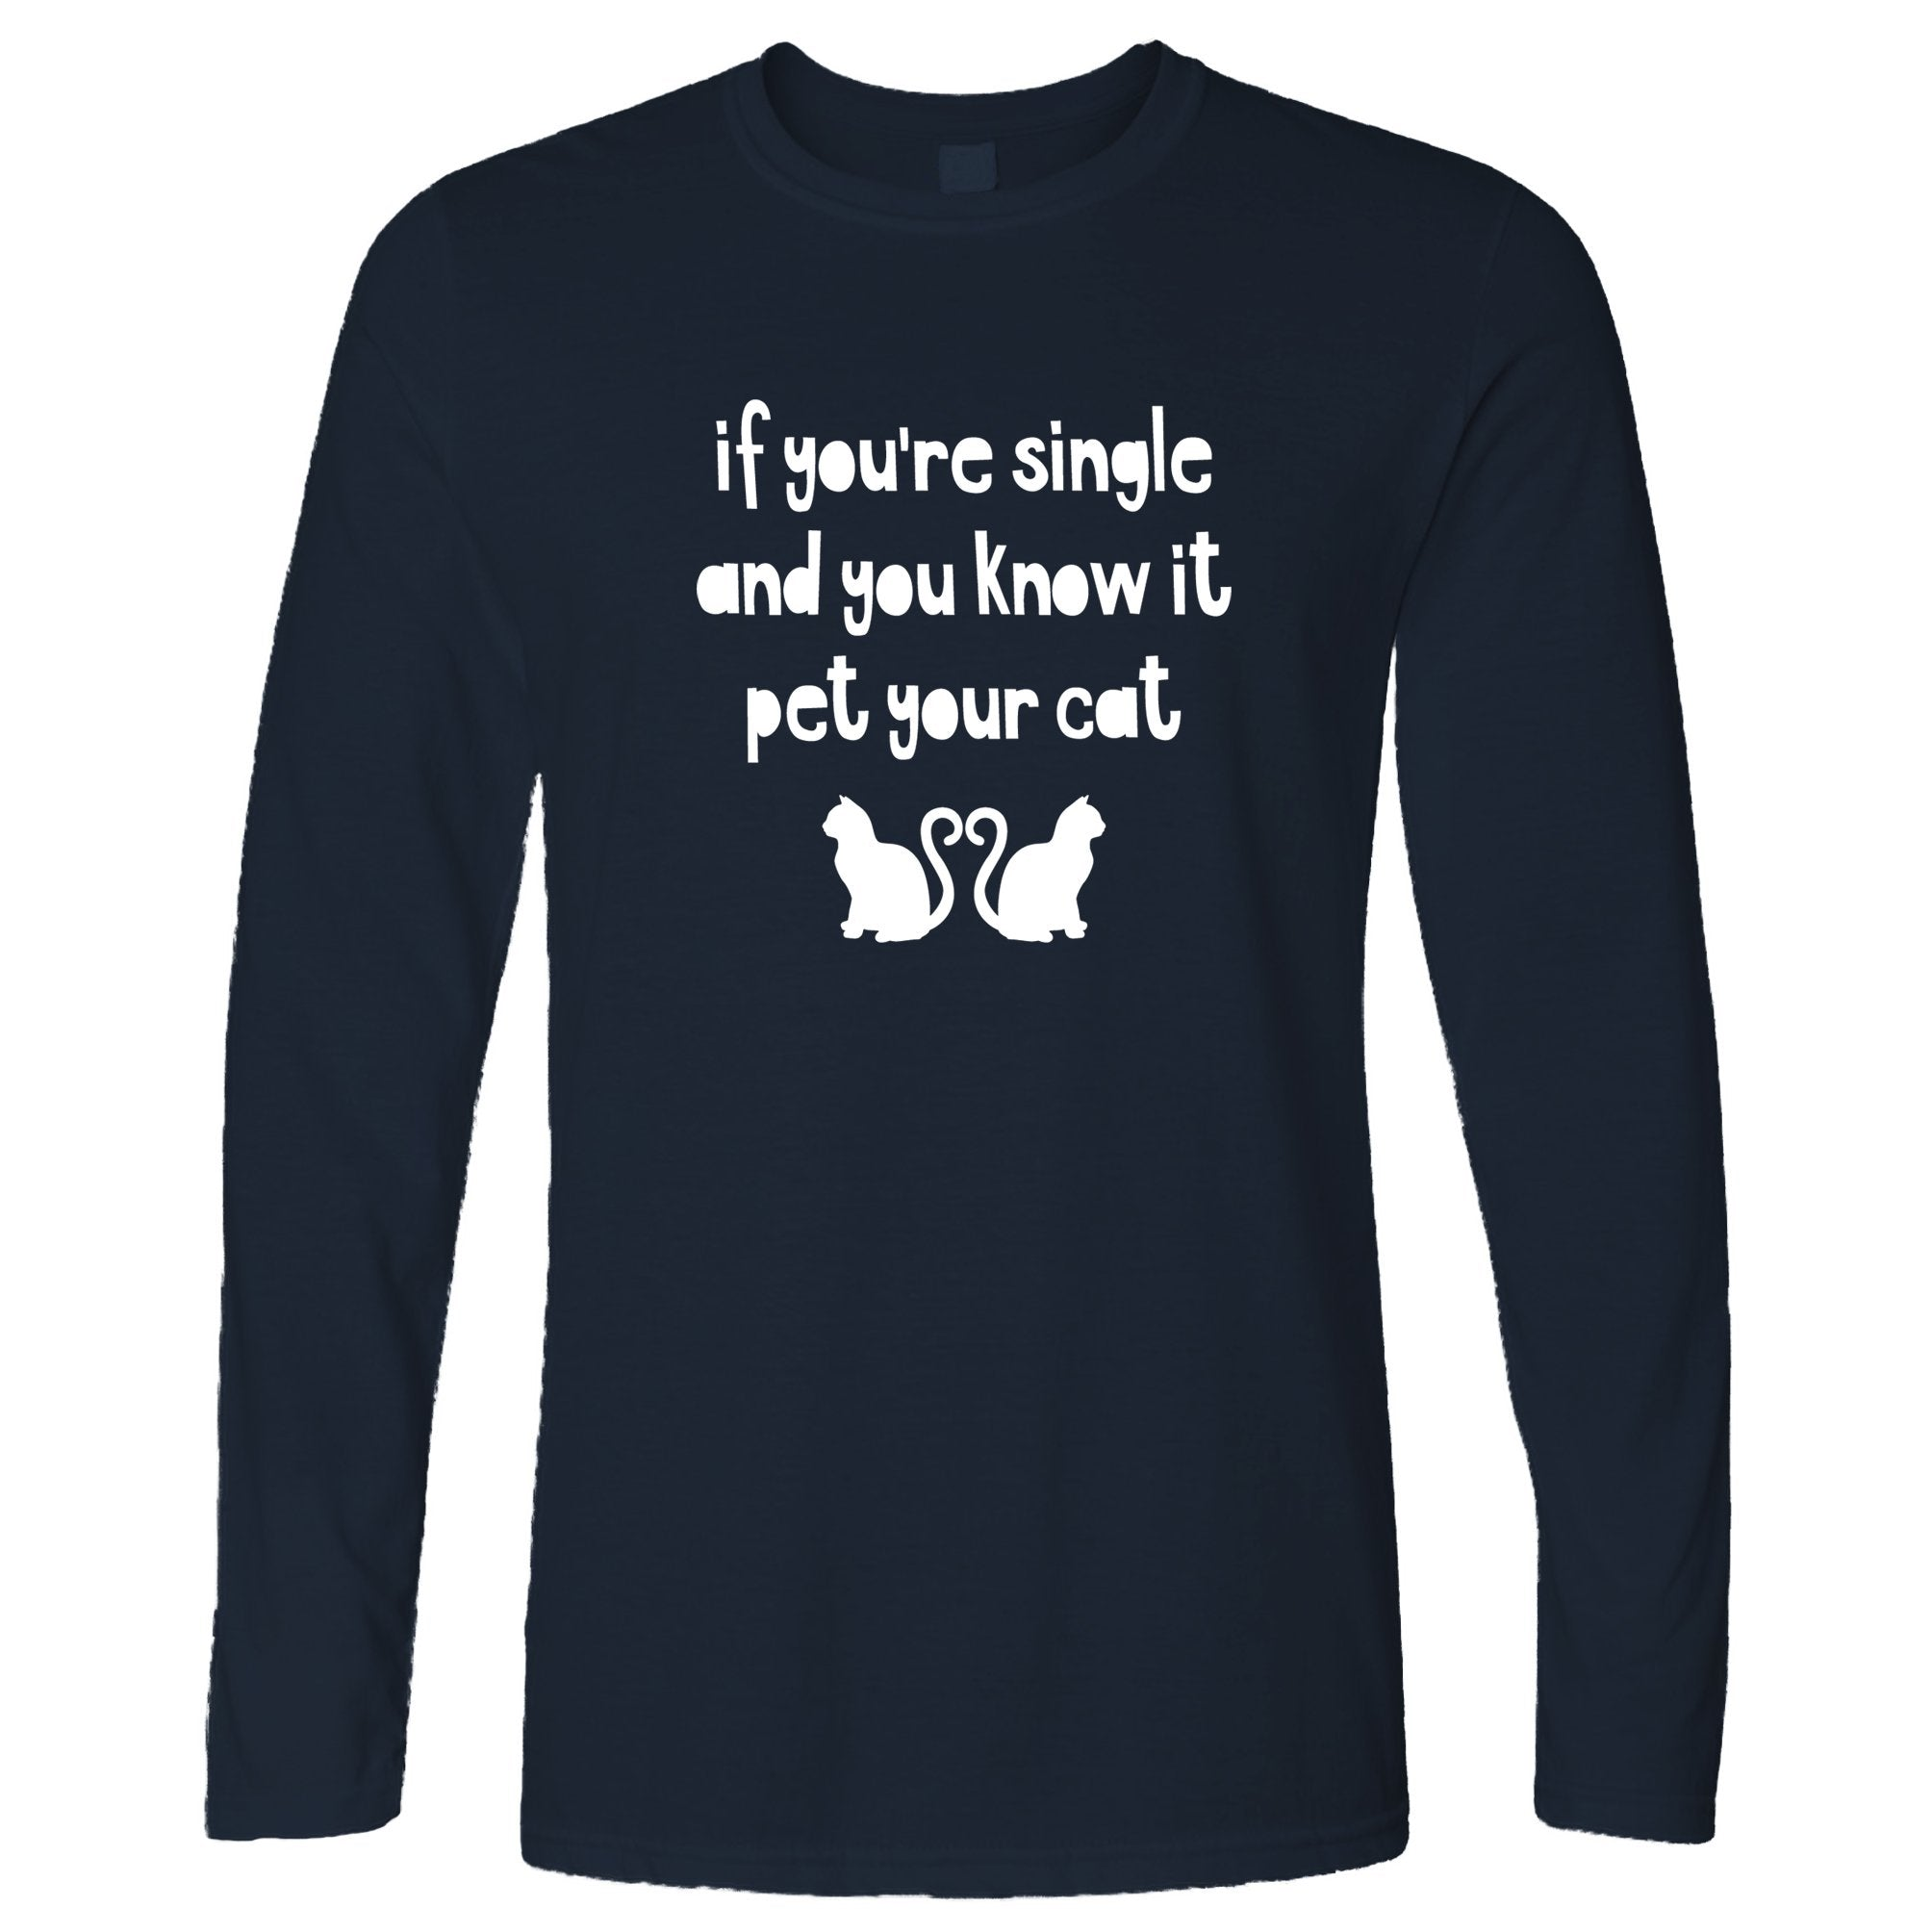 Valentines Long Sleeve Single And You Know It Joke T-Shirt